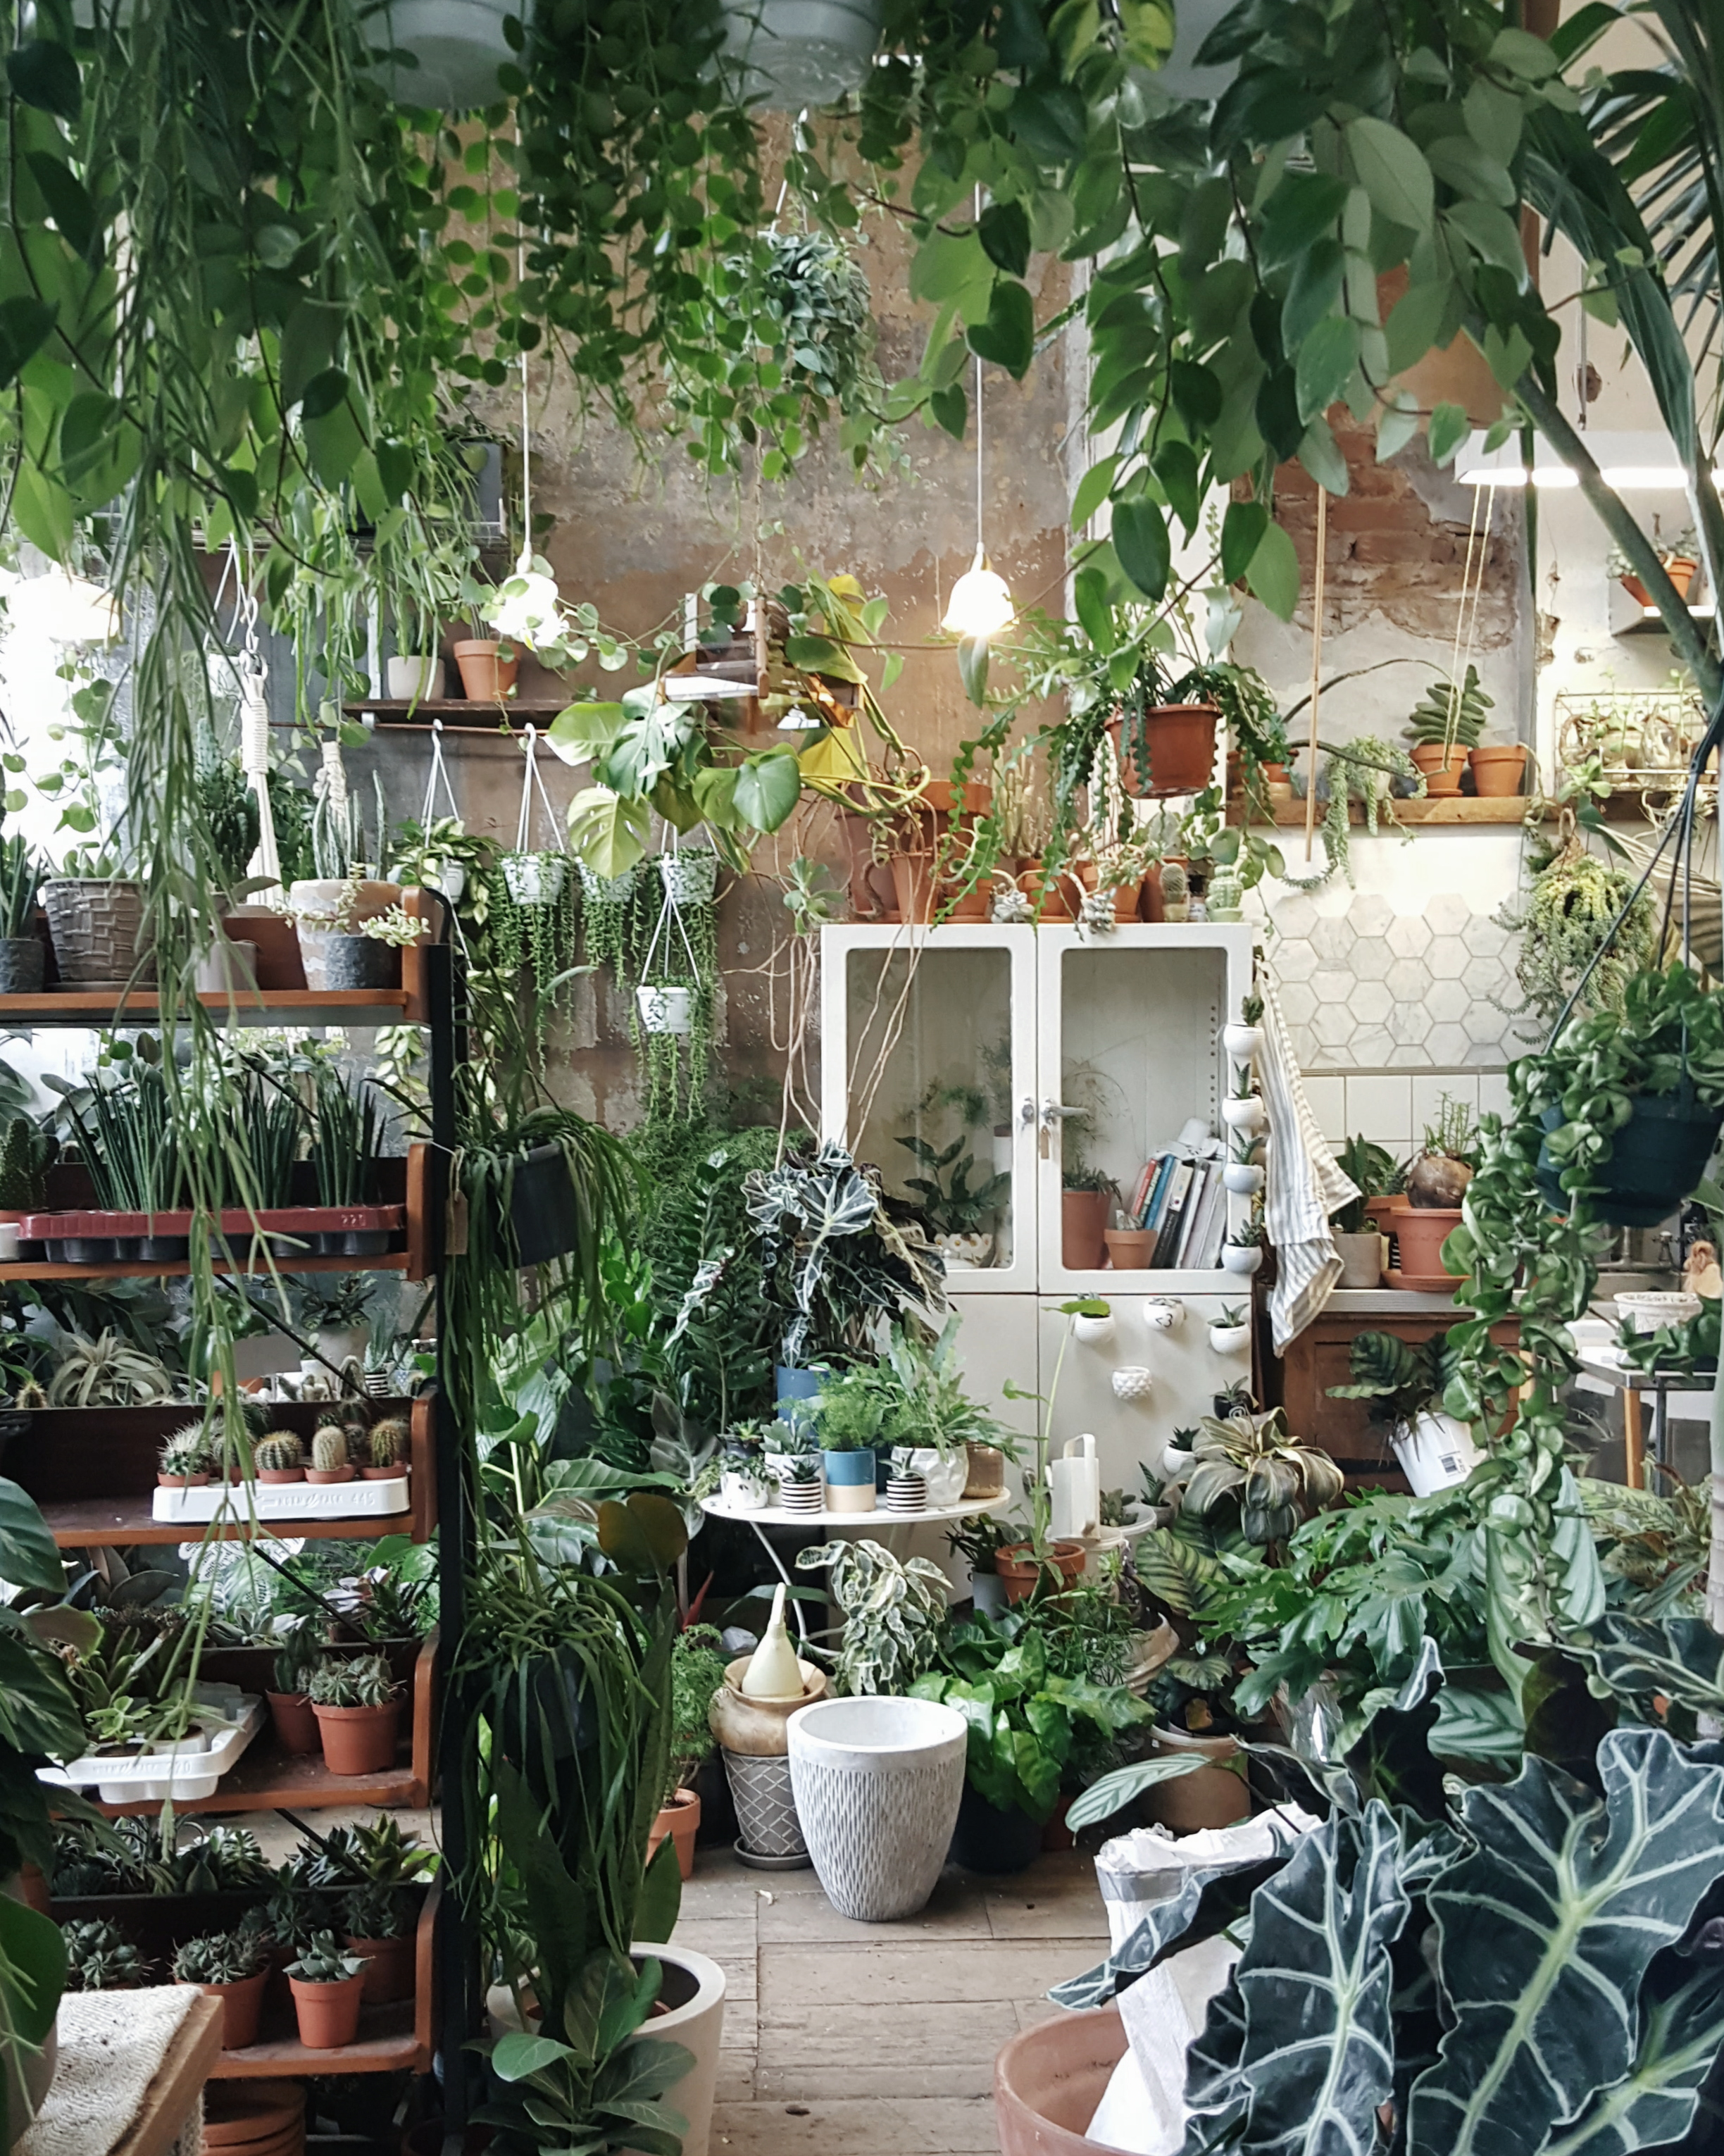 Littlegreenshed blog nature in the home conservatory archives London